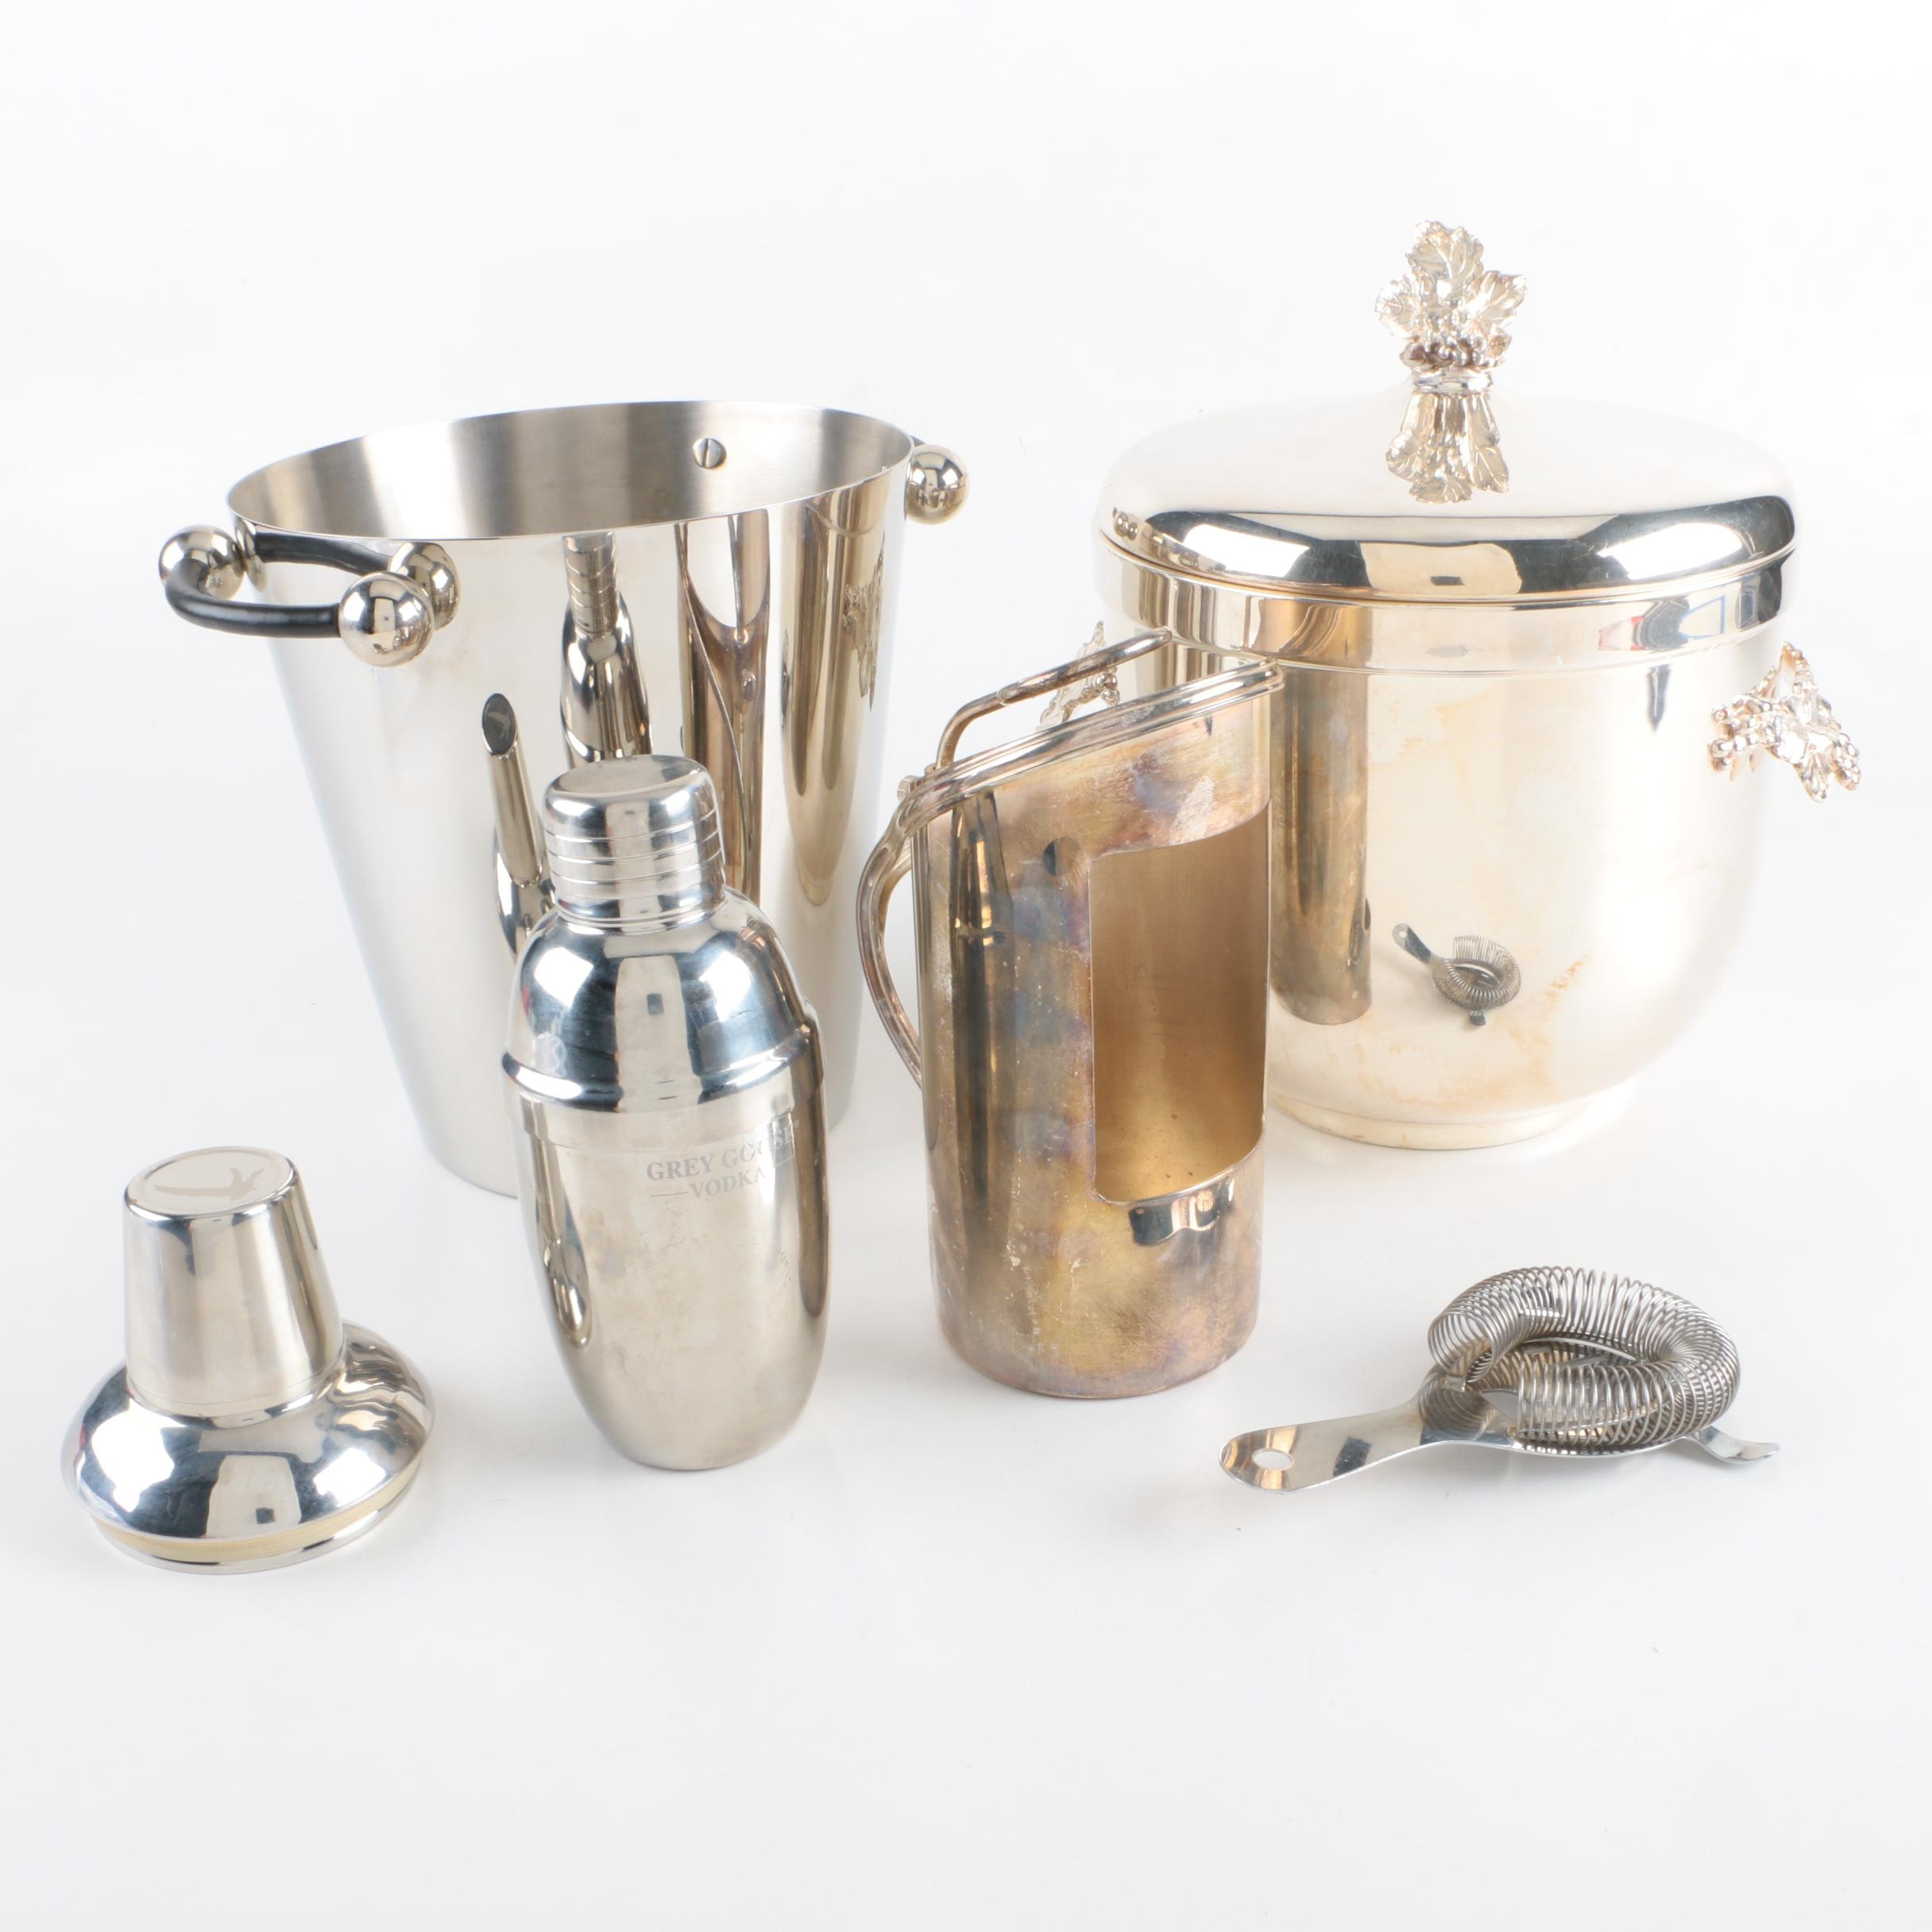 Gorham Silver Plate Ice Bucket with Other Stainless Steel Barware